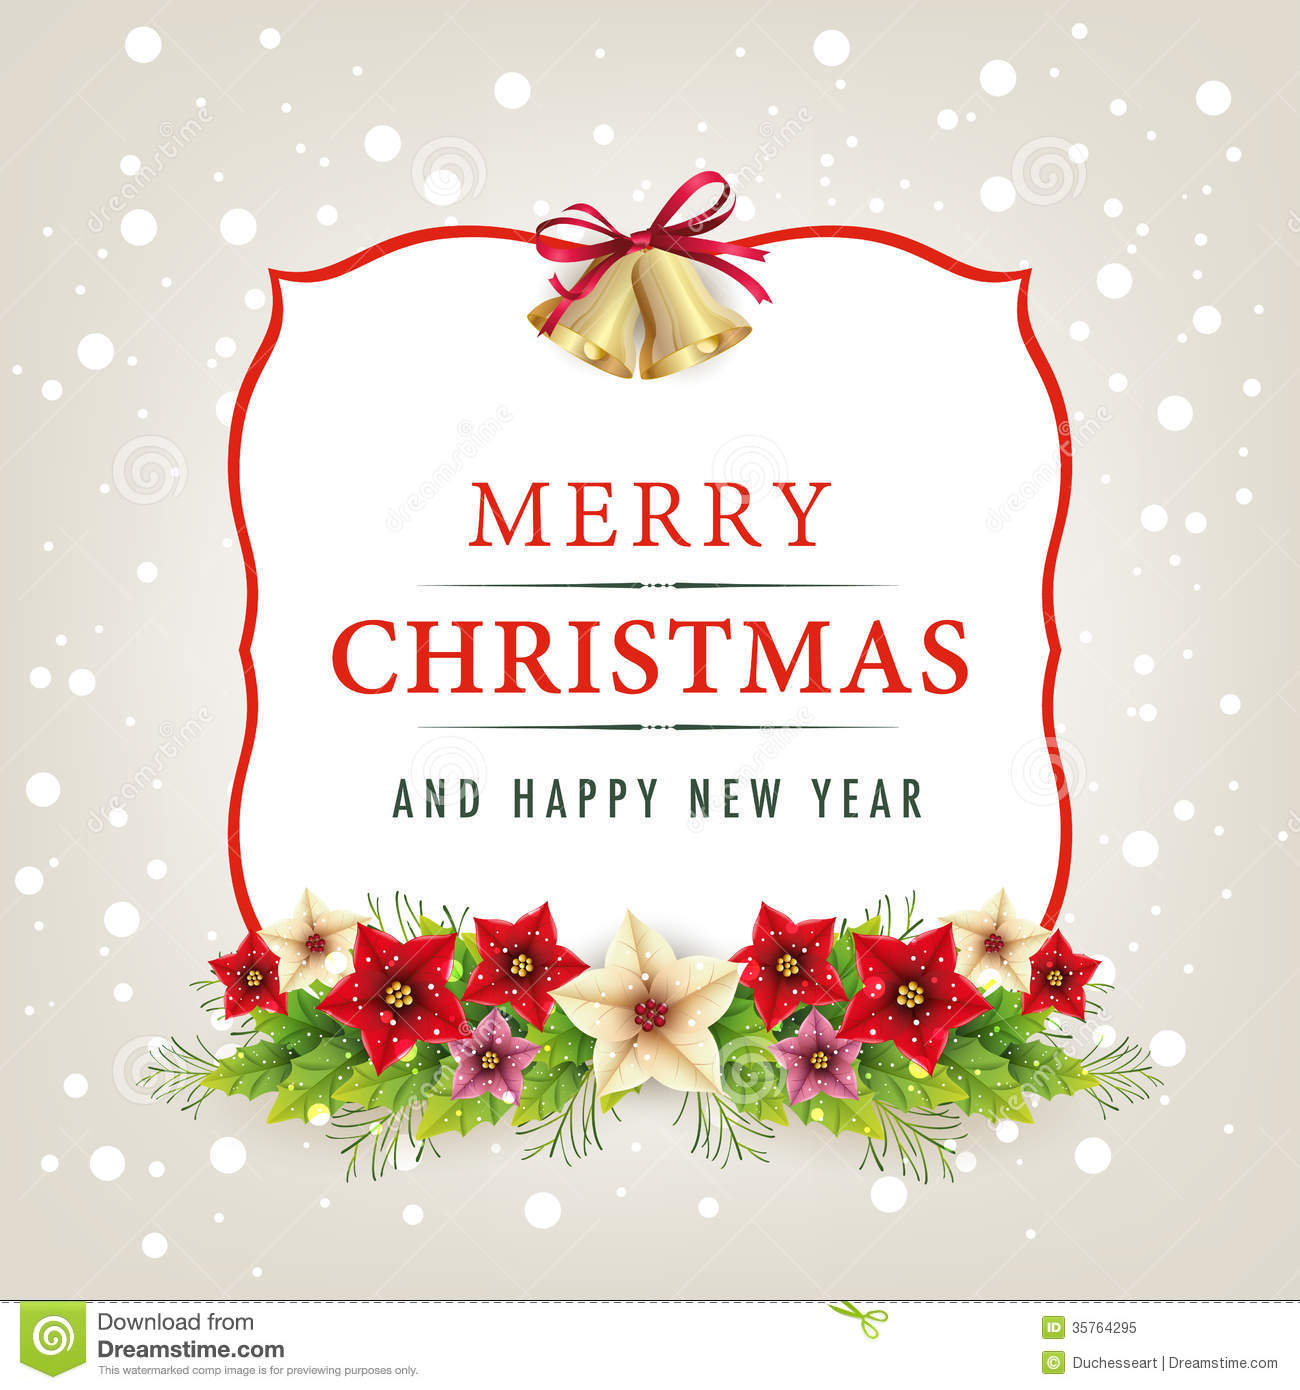 Merry Christmas And Happy New Year Card Stock Vector - Illustration ...